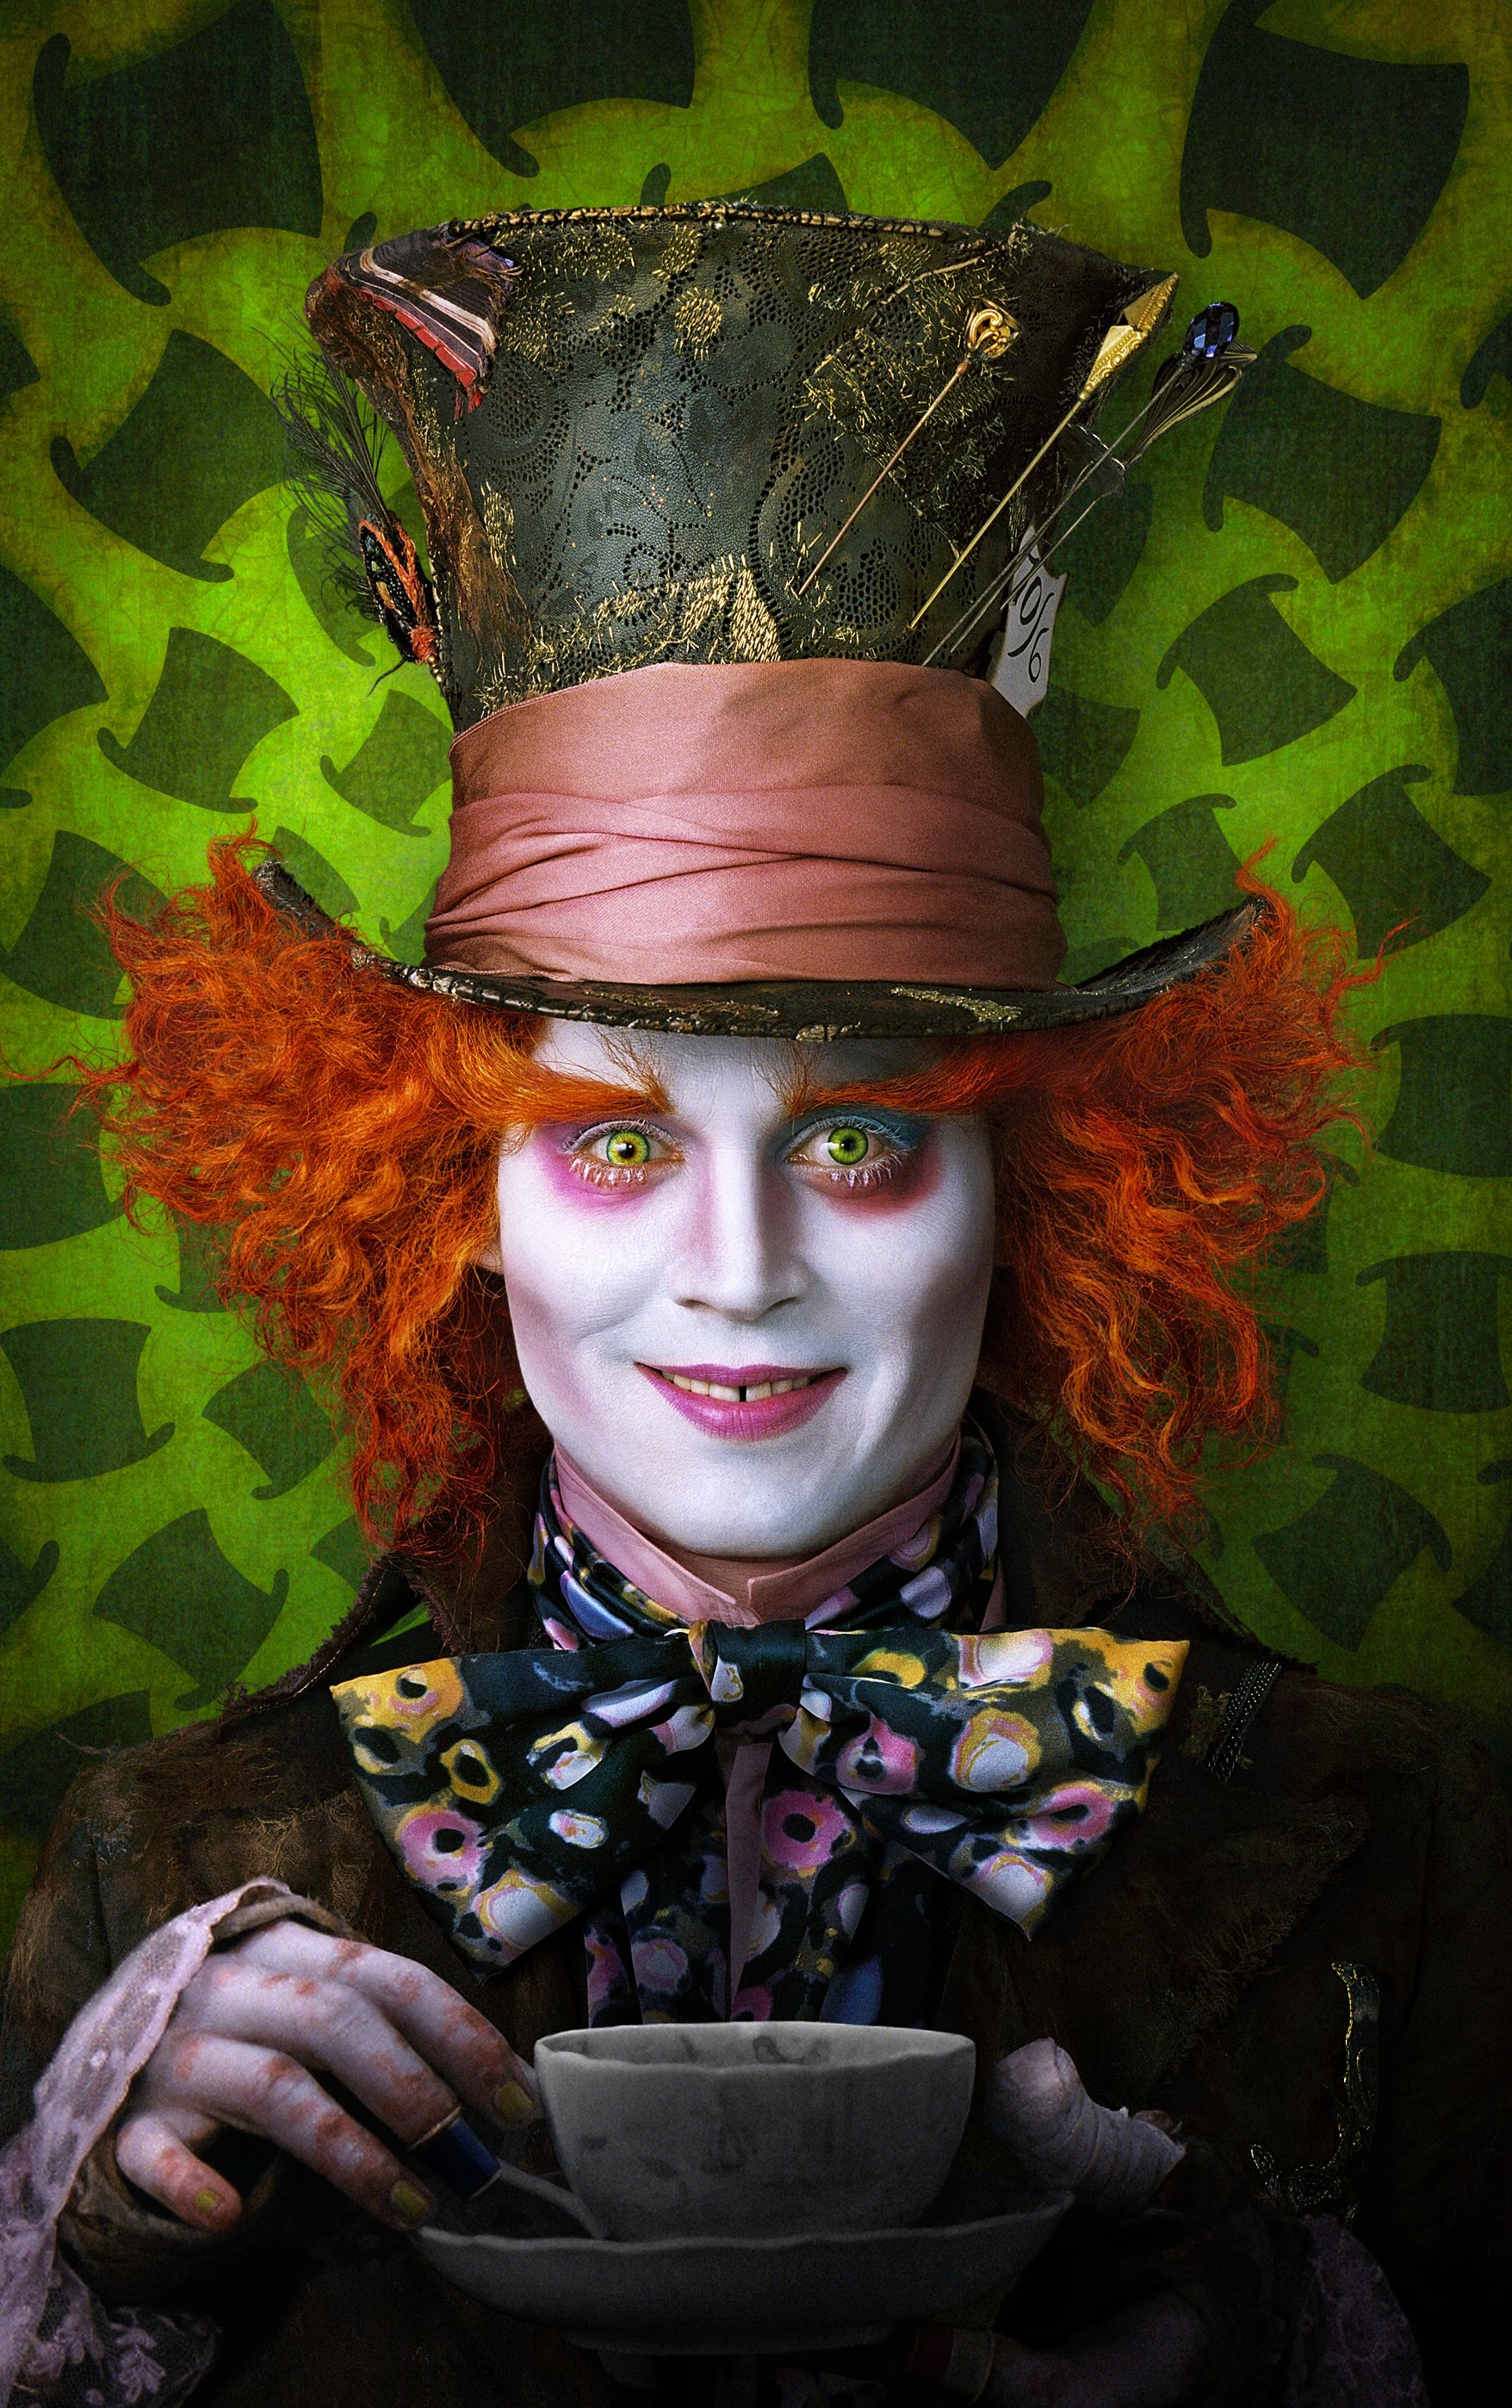 an analysis of charlie and the chocolate factory and alice in wonderland two movies by tim burton Charlie and the chocolate factory study guide contains a biography of roald dahl, literature essays, a complete e-text, quiz questions, major themes, characters, and a full summary and analysis.